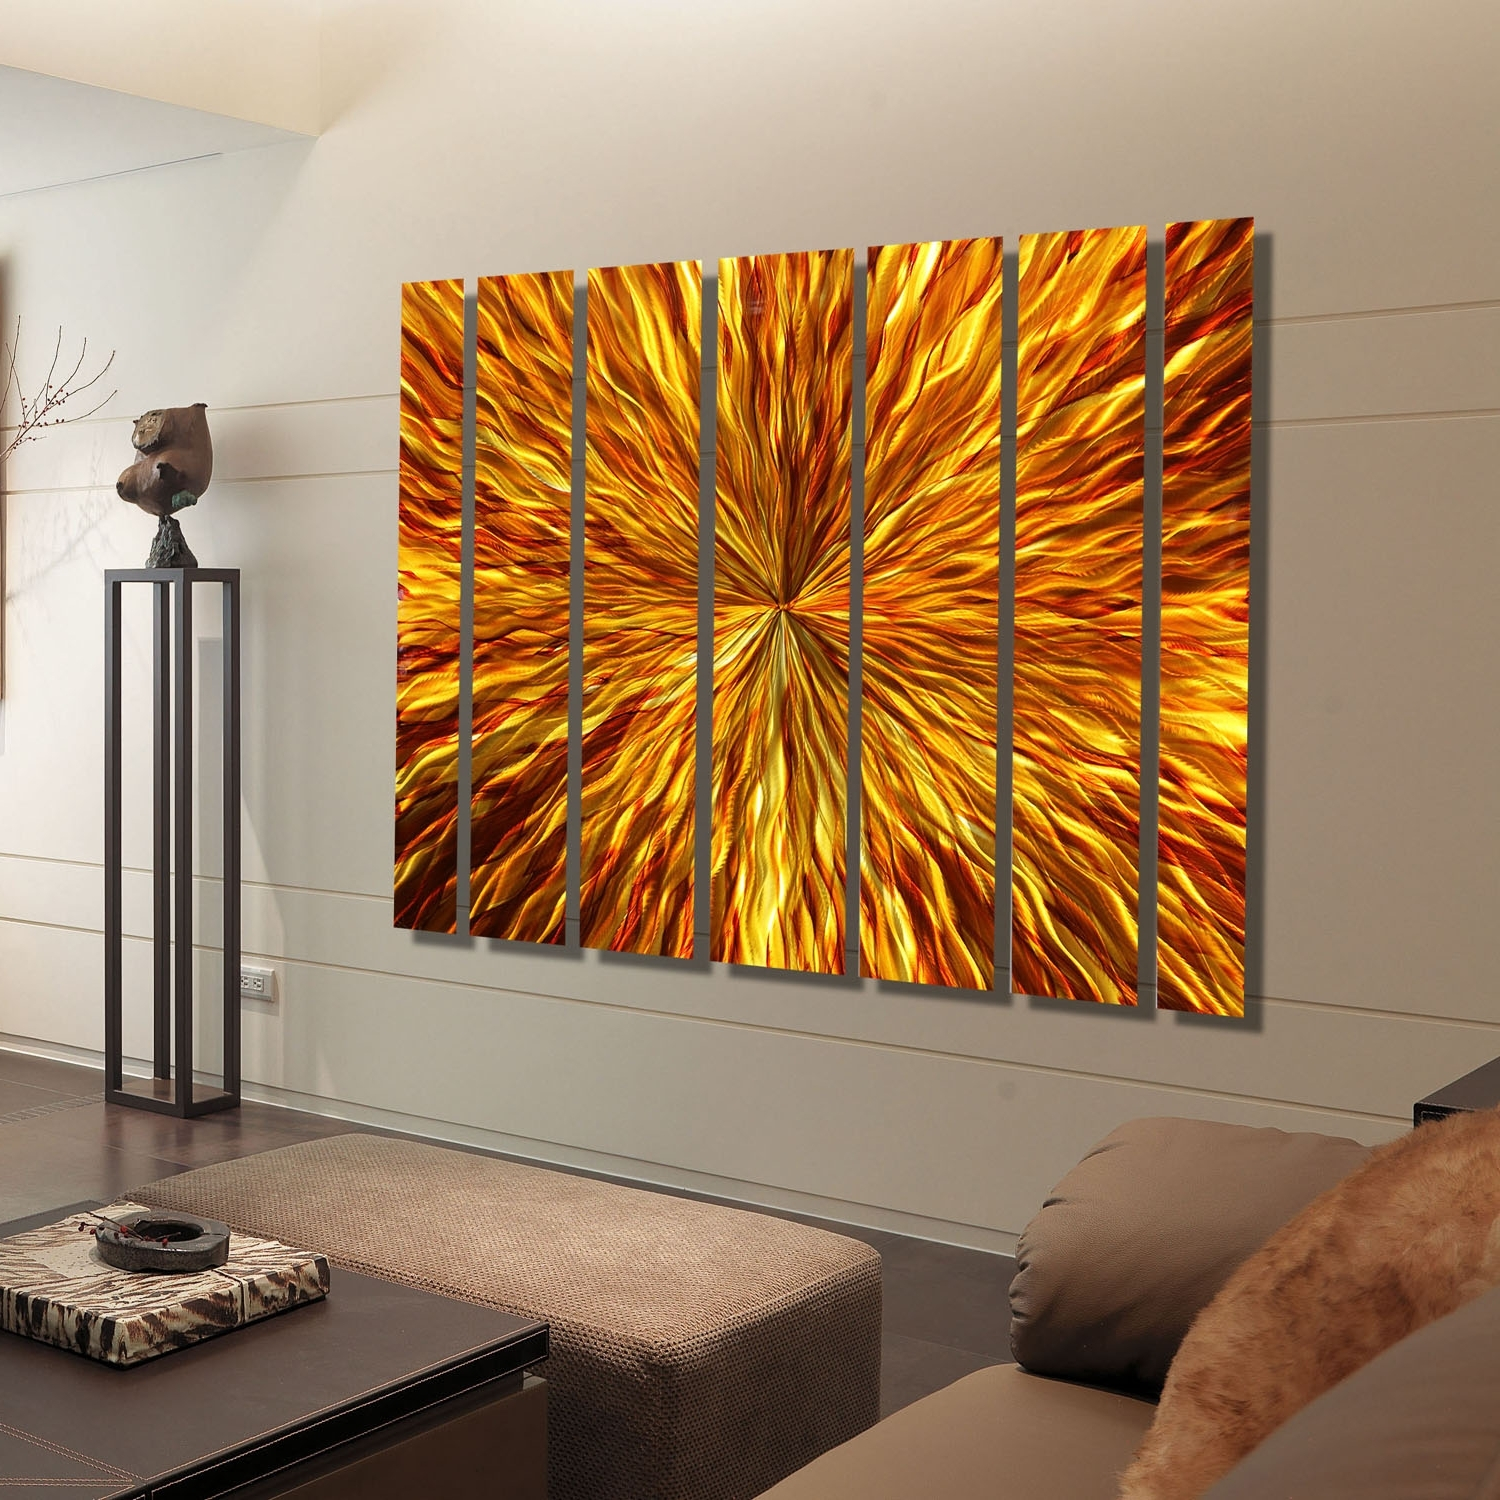 Amber Vortex Xl – Extra Large Modern Metal Wall Artjon Allen Regarding 2017 Extra Large Contemporary Wall Art (View 3 of 15)